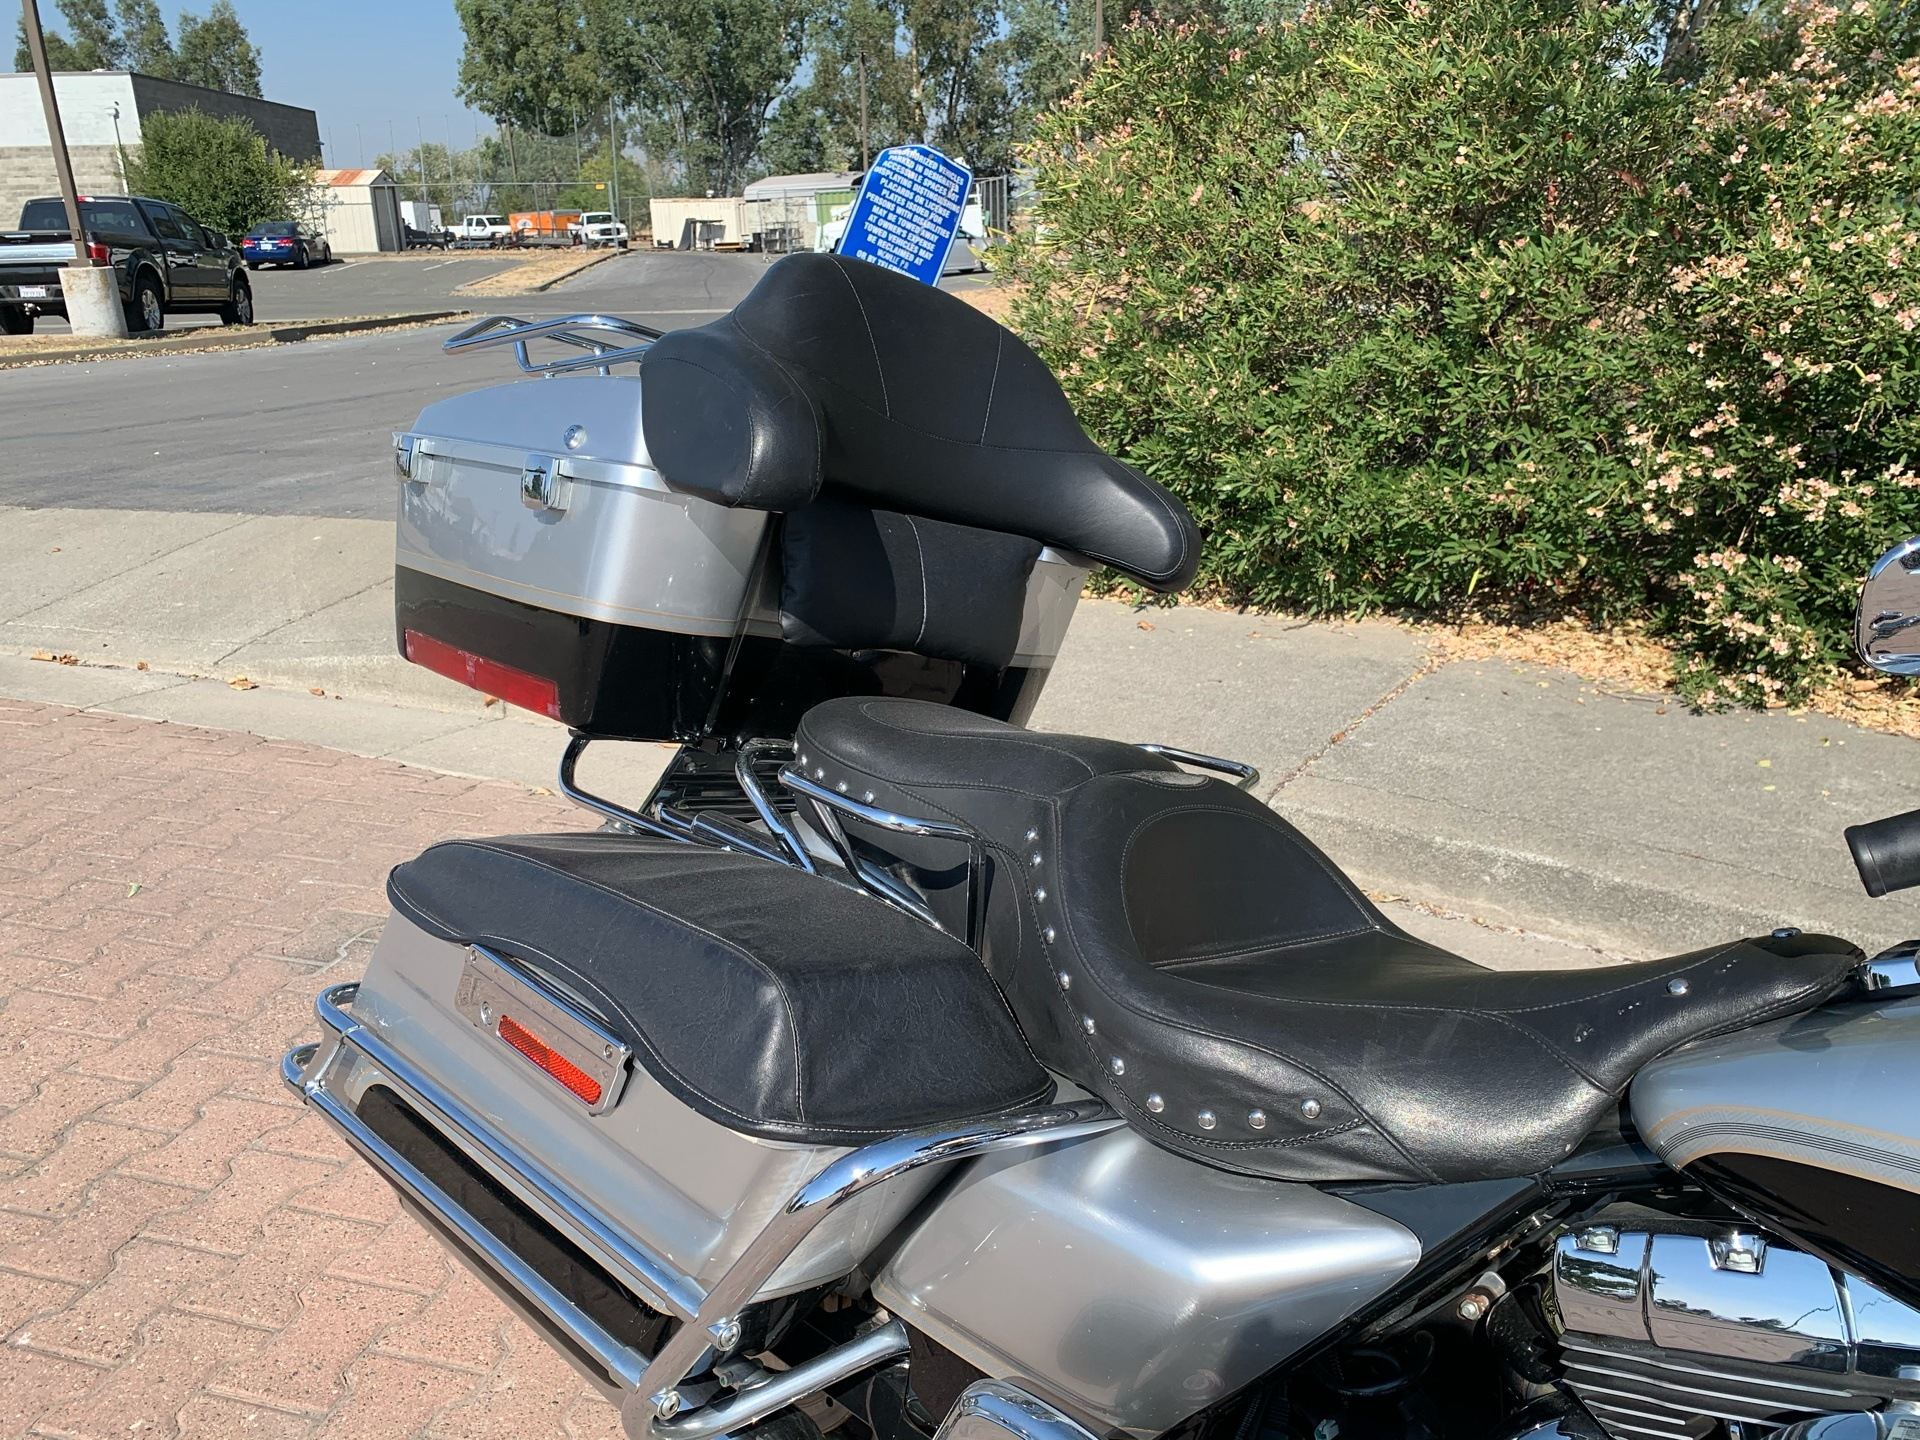 2003 Harley-Davidson FLHTC/FLHTCI Electra Glide® Classic in Vacaville, California - Photo 10